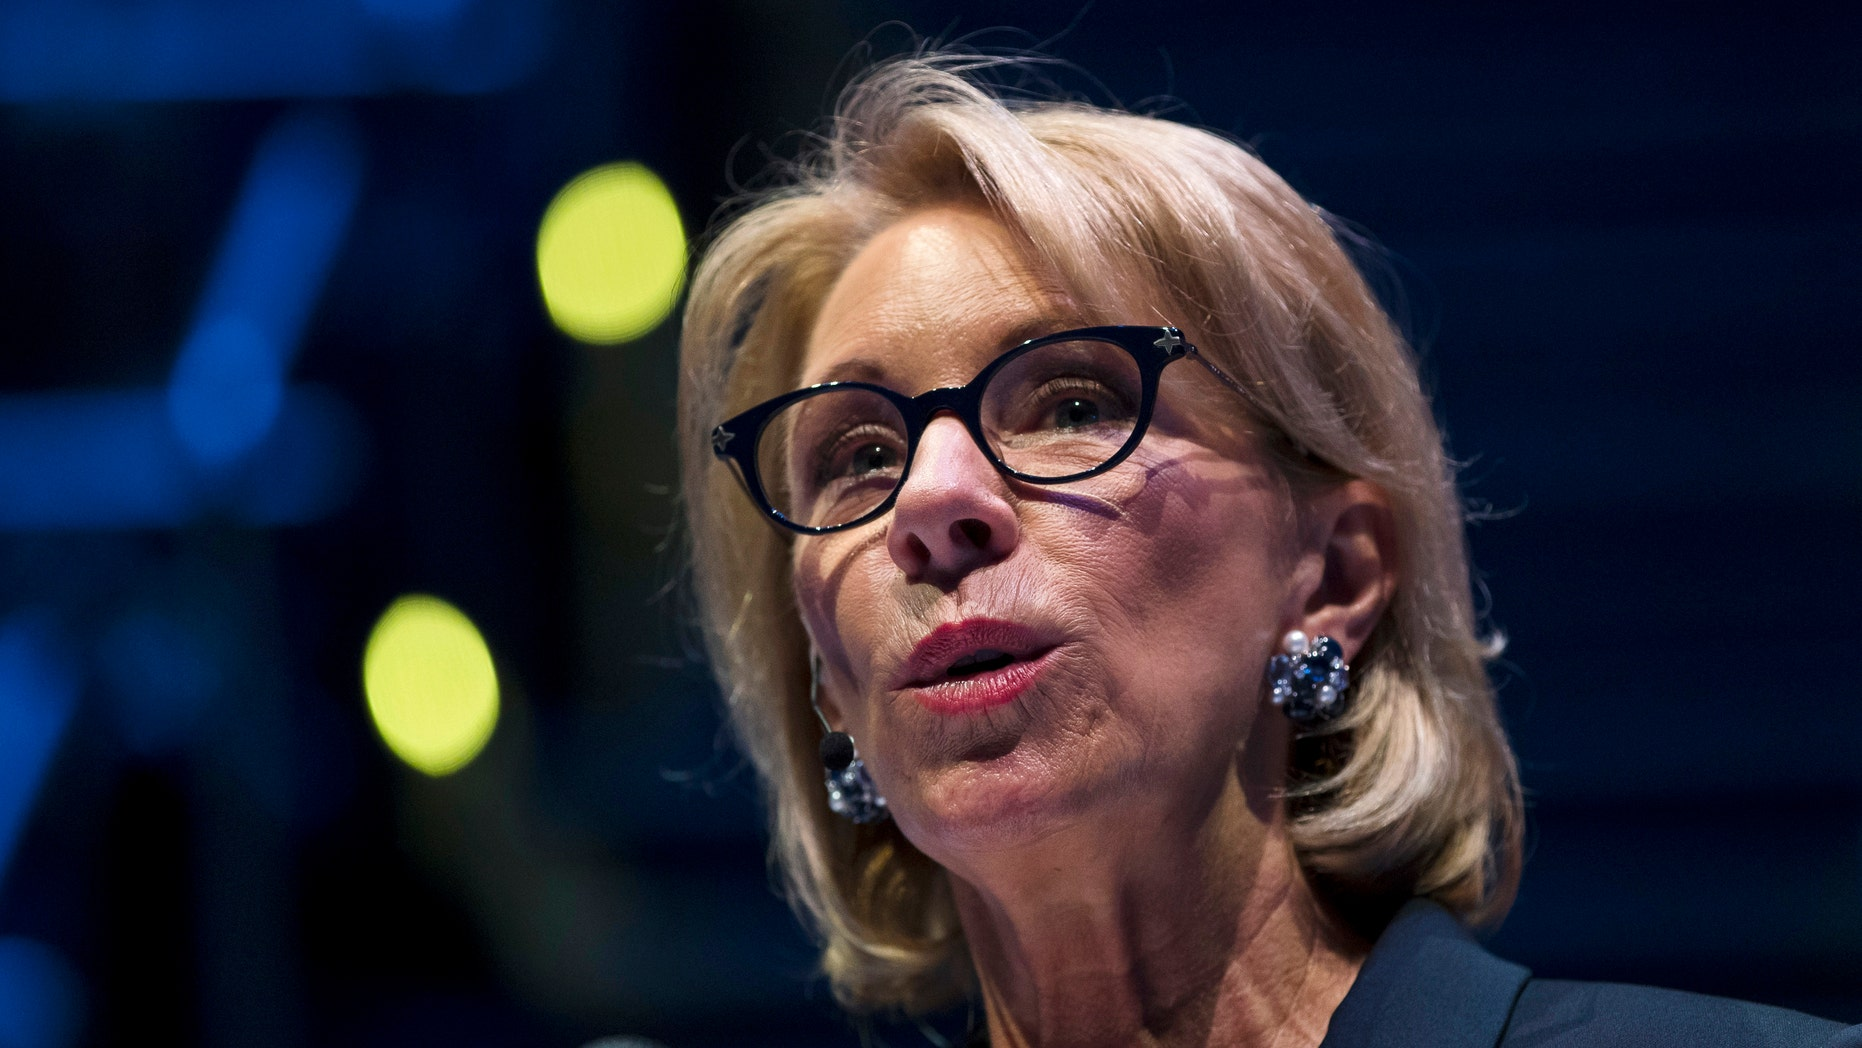 Education Secretary Betsy DeVos is proposing a major overhaul to the way colleges handle complaints of sexual misconduct. The Education Department released a plan Friday that would require schools to investigate sexual assault and harassment only if it was reported to certain campus officials and only if it occurred on campus or other areas overseen by the school.